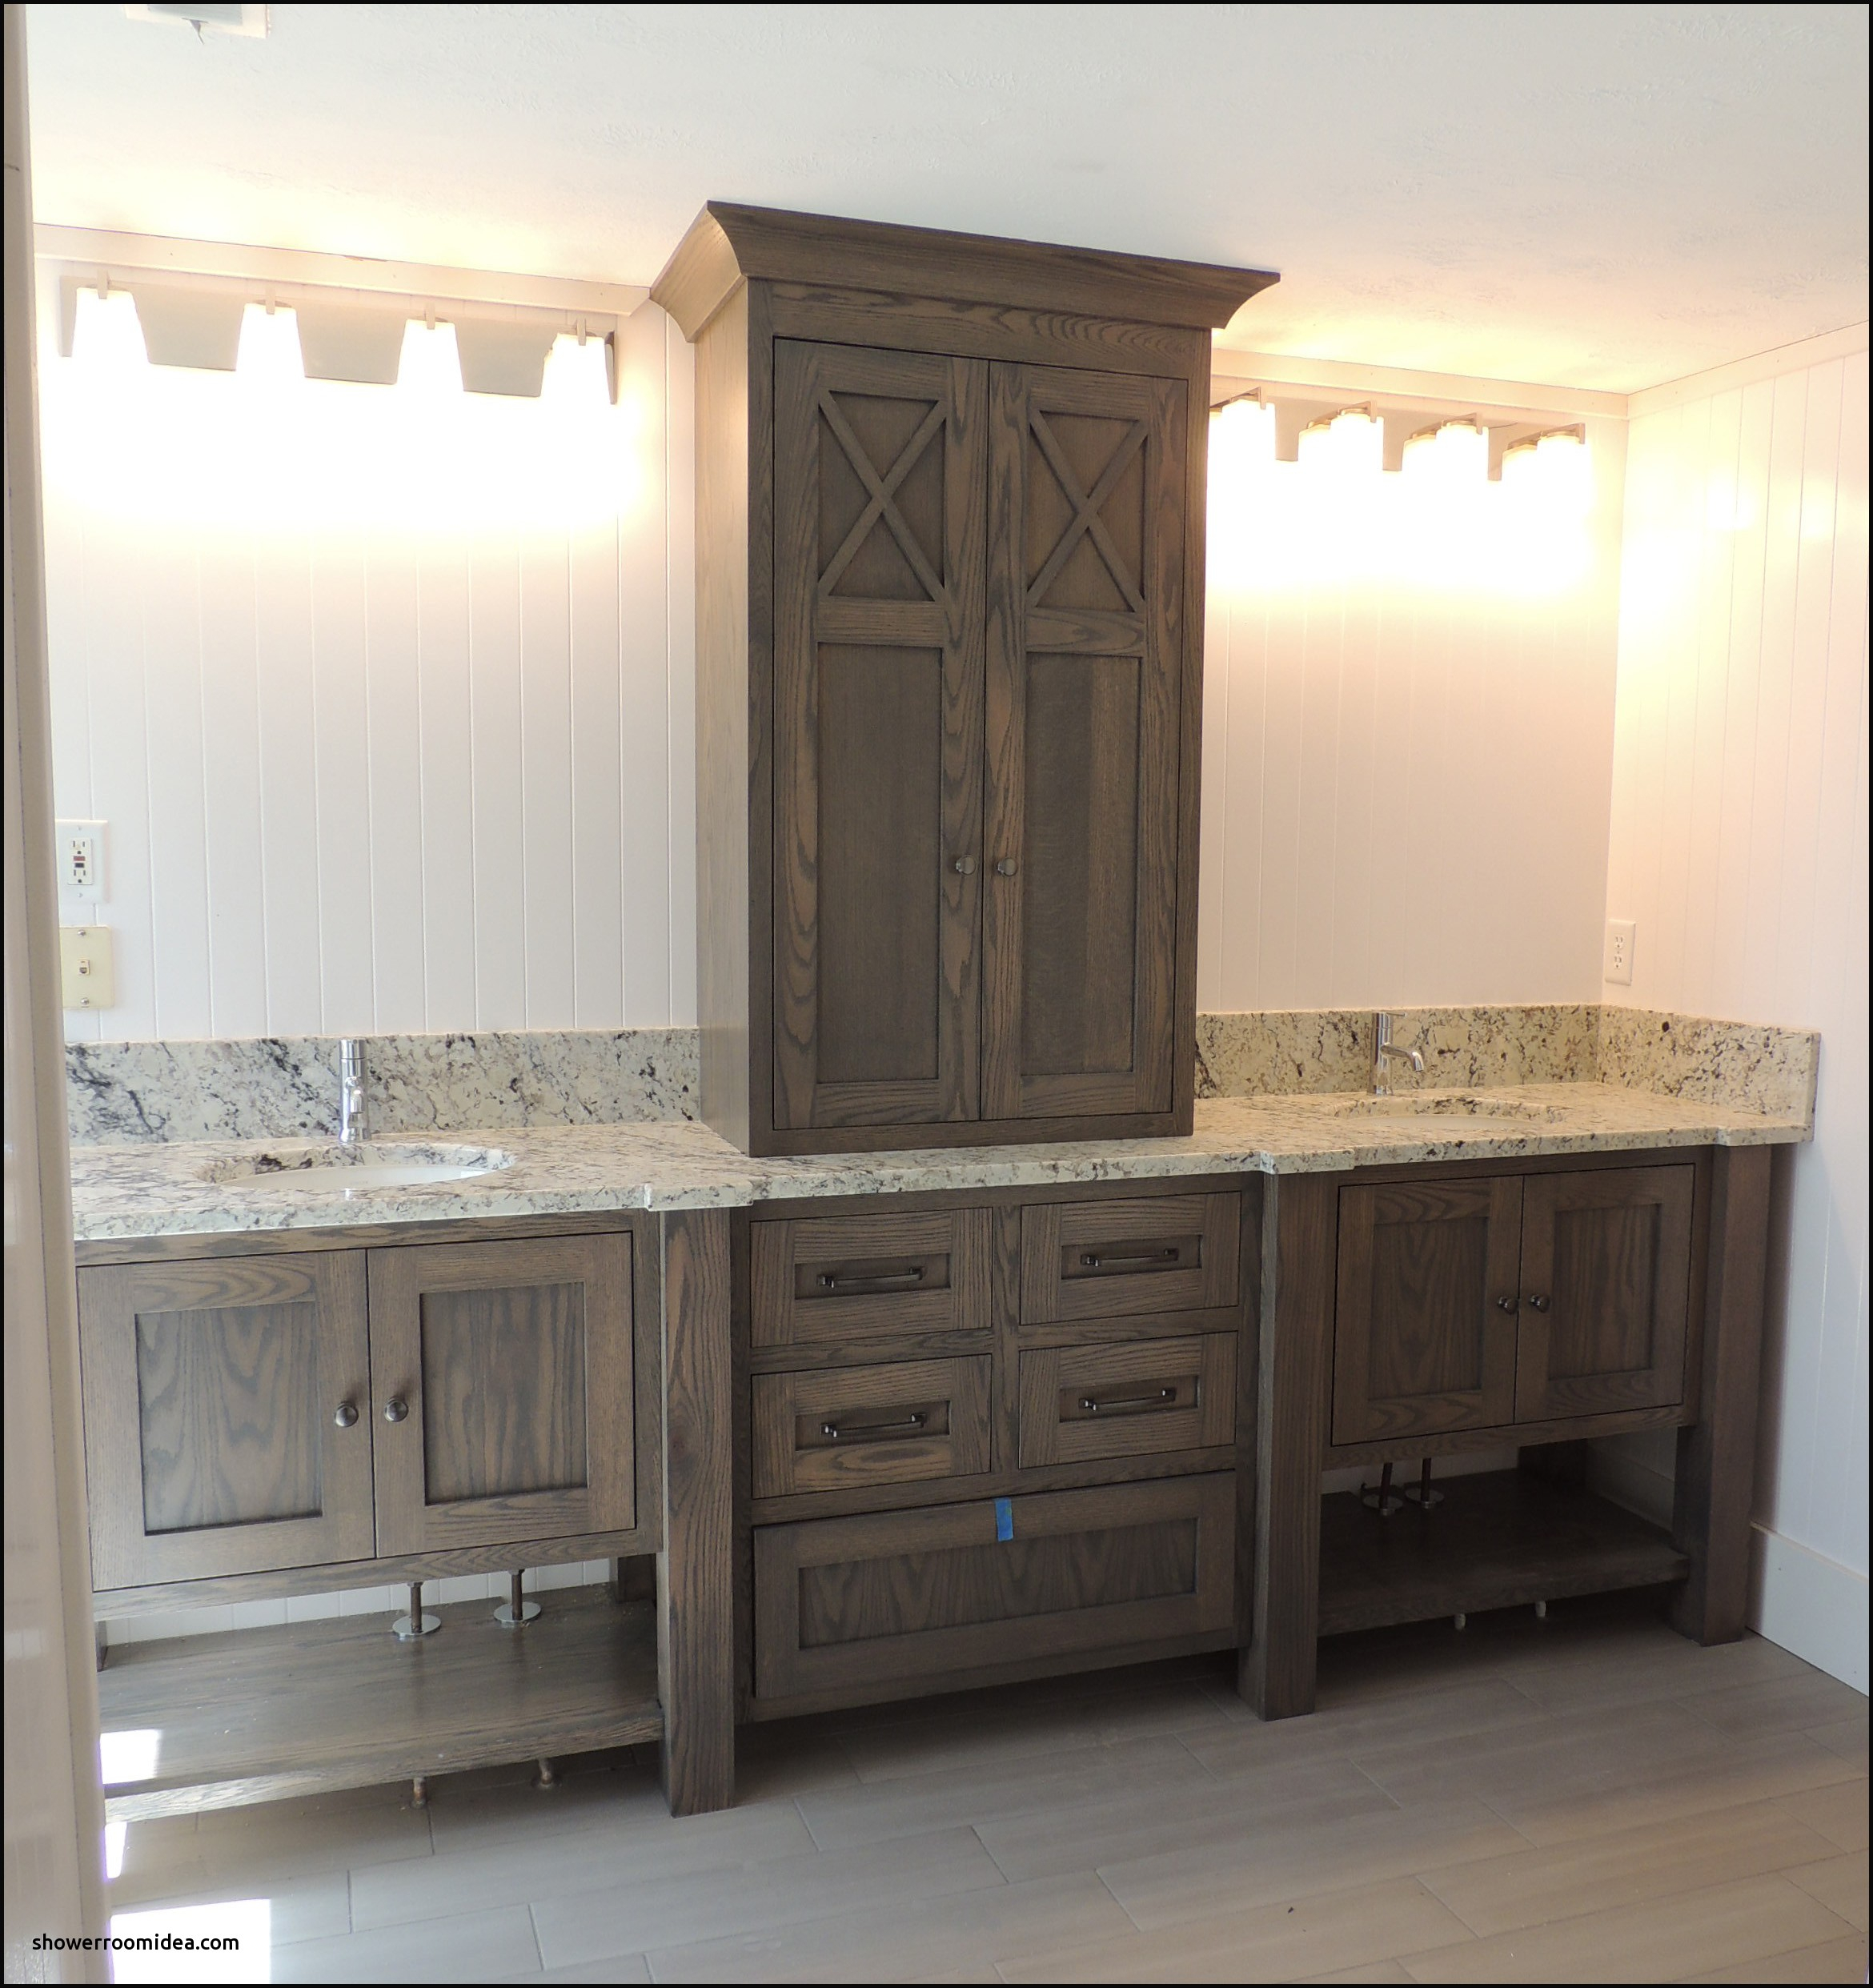 Elite Bathroom Vanities Furniture Elegant Furniture Style Bathroom Vanity pertaining to Best of Furniture Style Bathroom Vanities